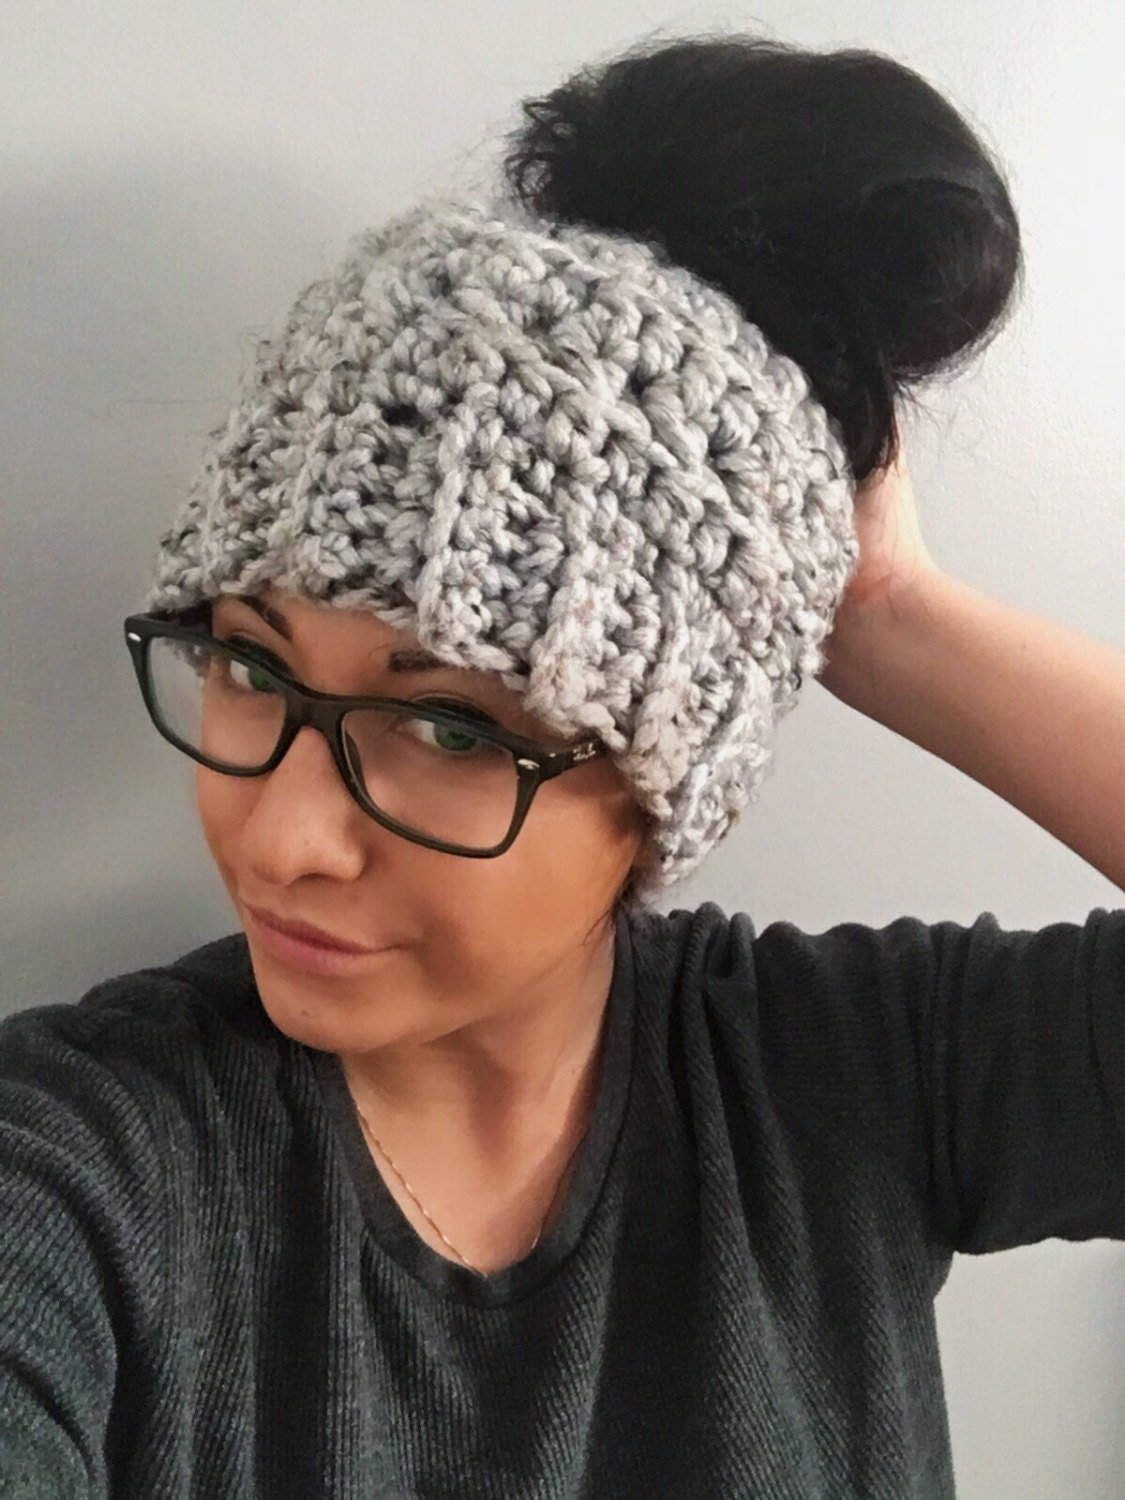 Messy bun hat crochet bun beanie winter hat man bun hat etsy jpg 1125x1500 Men  bun 7844d899a040